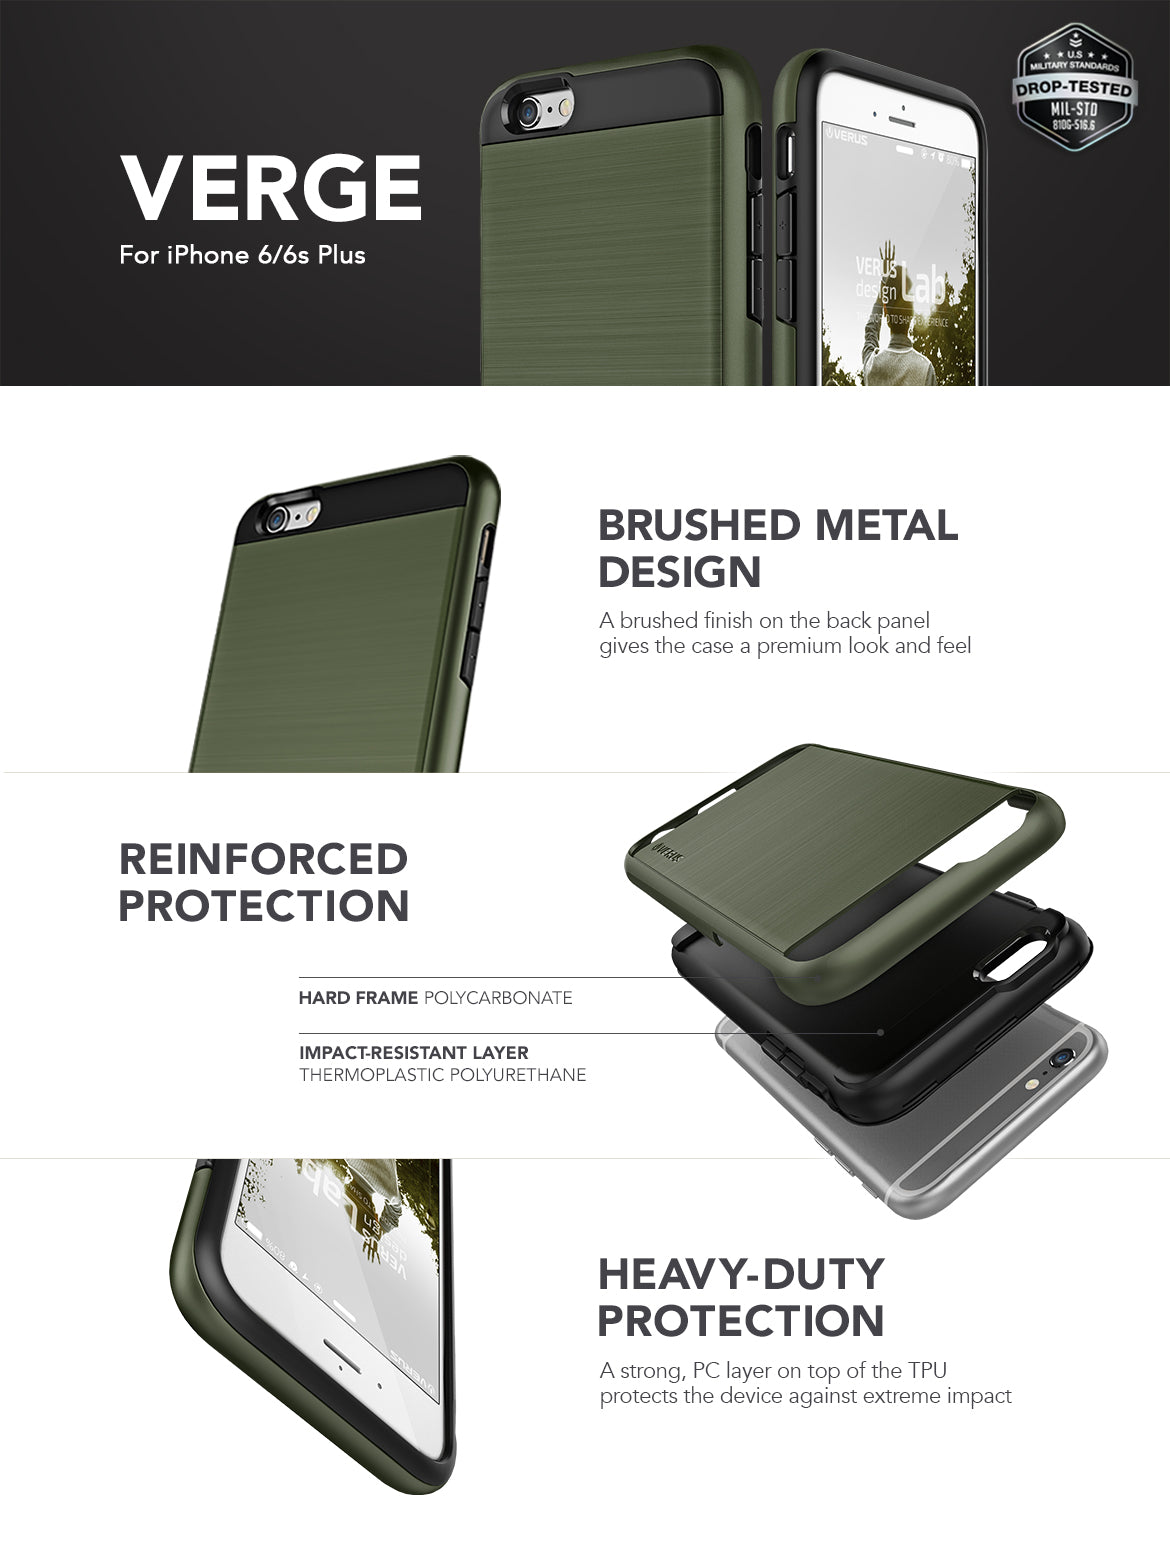 iPhone 6/6s Plus_Verge